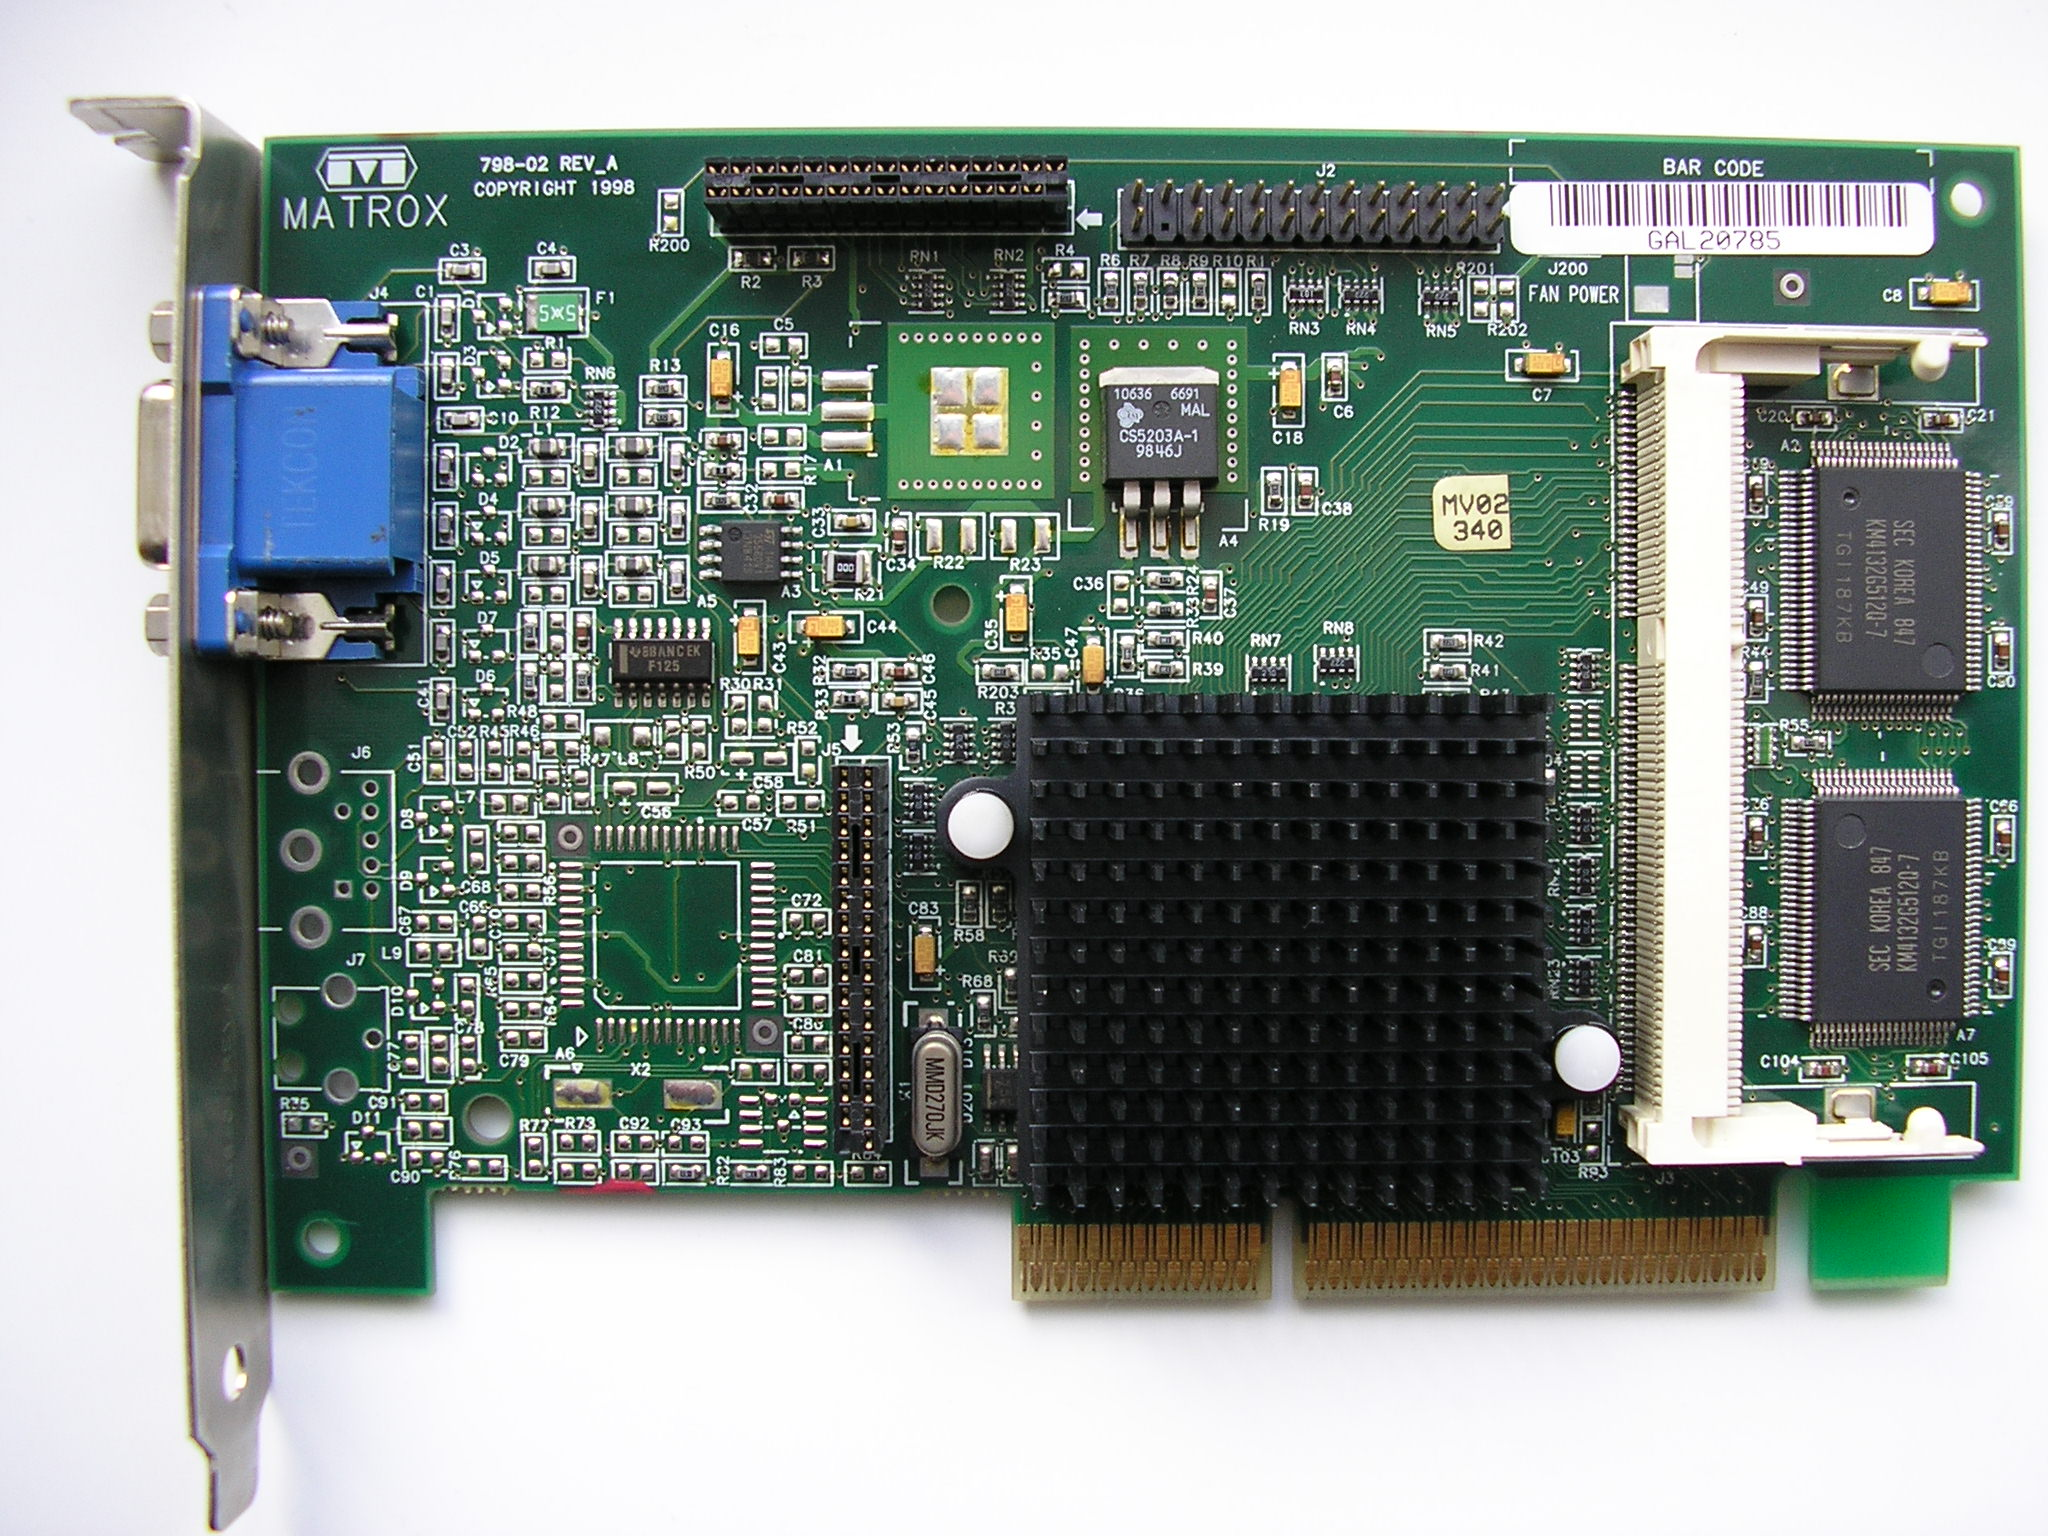 MATROX MGA-G200 B8 WINDOWS 8 X64 DRIVER DOWNLOAD